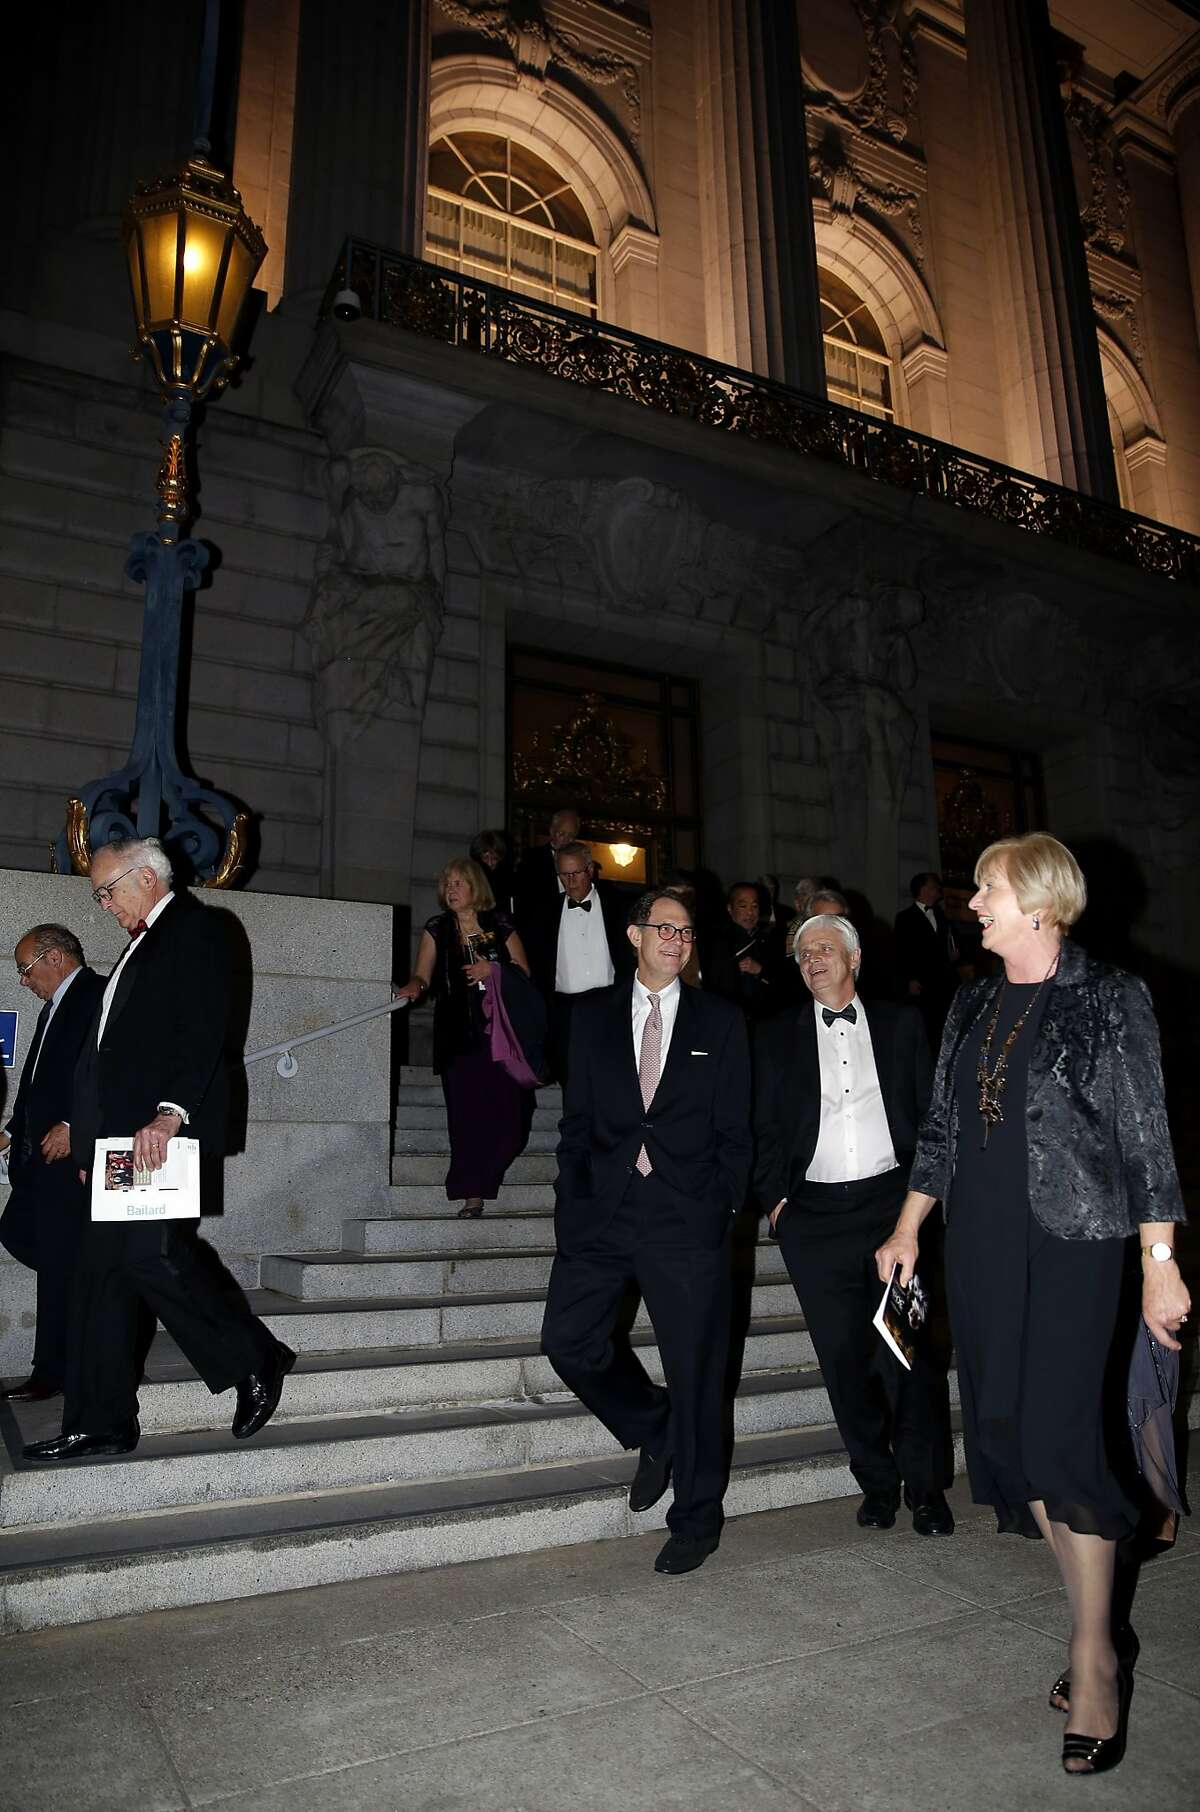 A crowd of well-dressed revelers walk from City Hall to the Herbst Theatre for a concert celebrating the 30th anniversary of the Philharmonia Baroque Orchestra's music director Nicholas McGegan in San Francisco, California, on Thursday, Feb. 11, 2016.